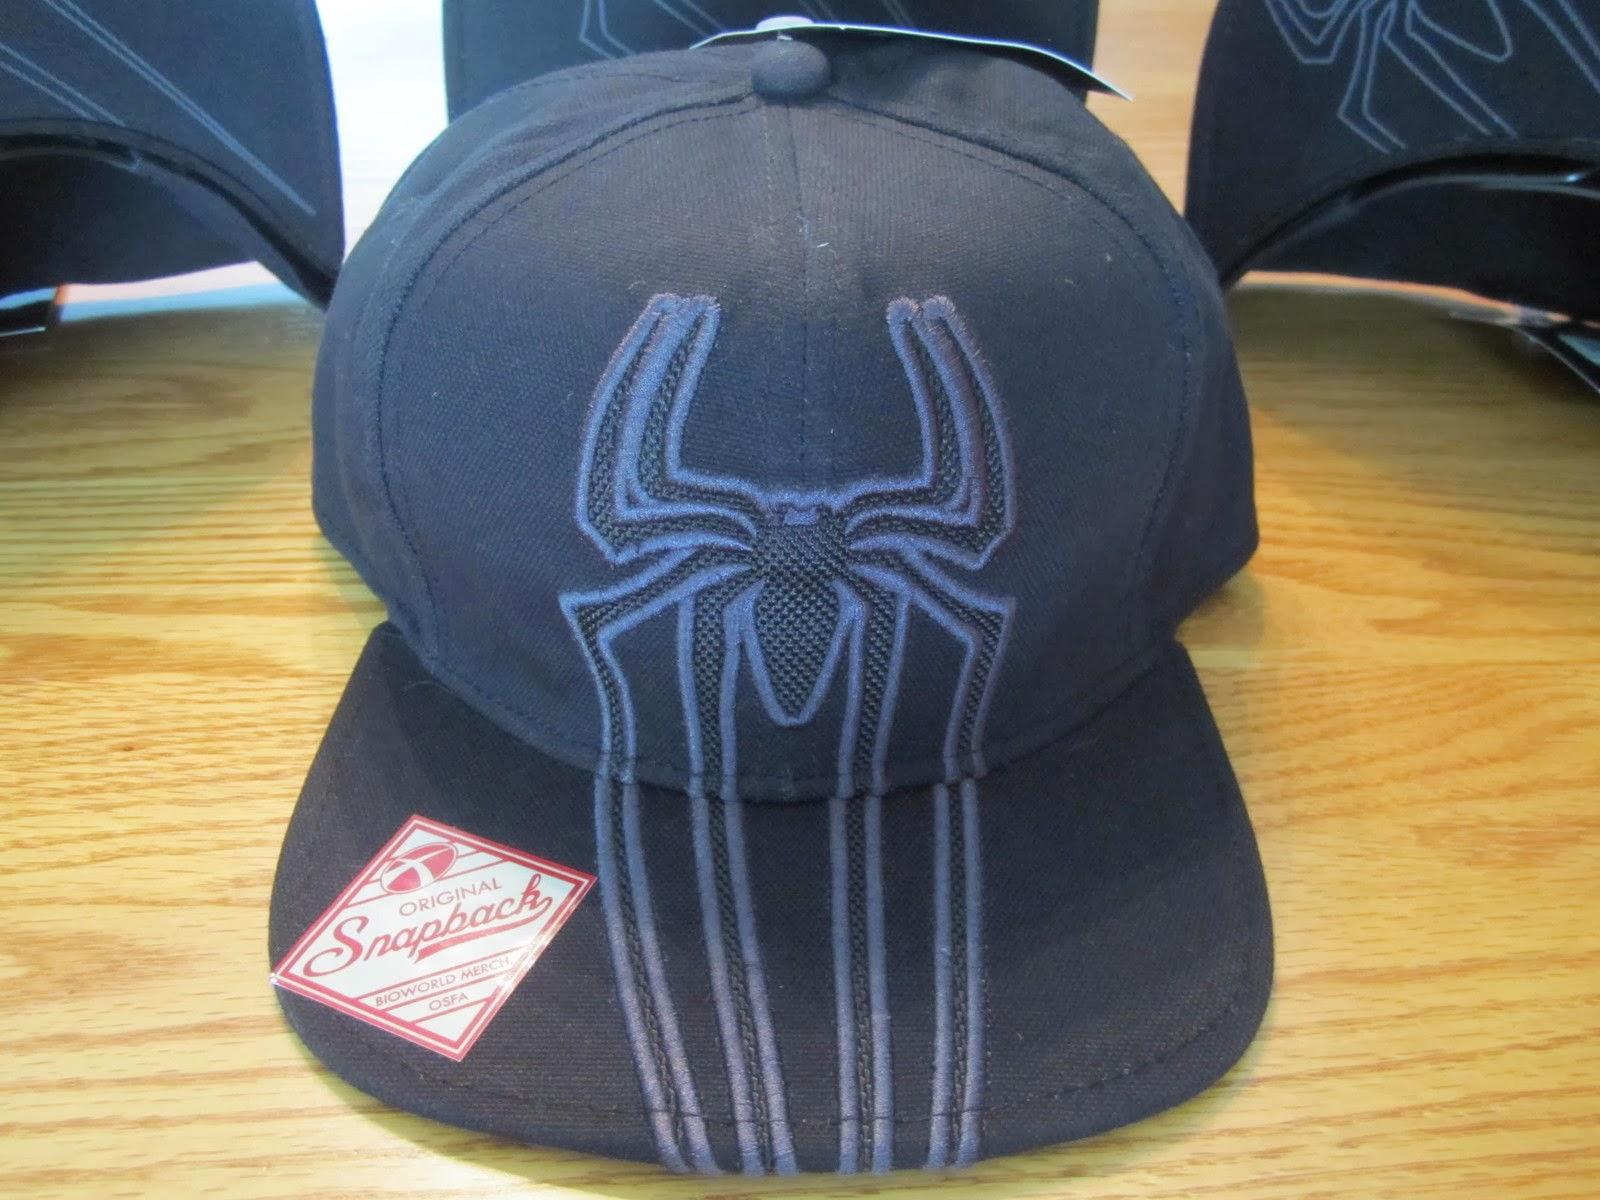 The Amazing Spider-Man Spiderman Snapback Hat Marvel Comics NWT - BLACK